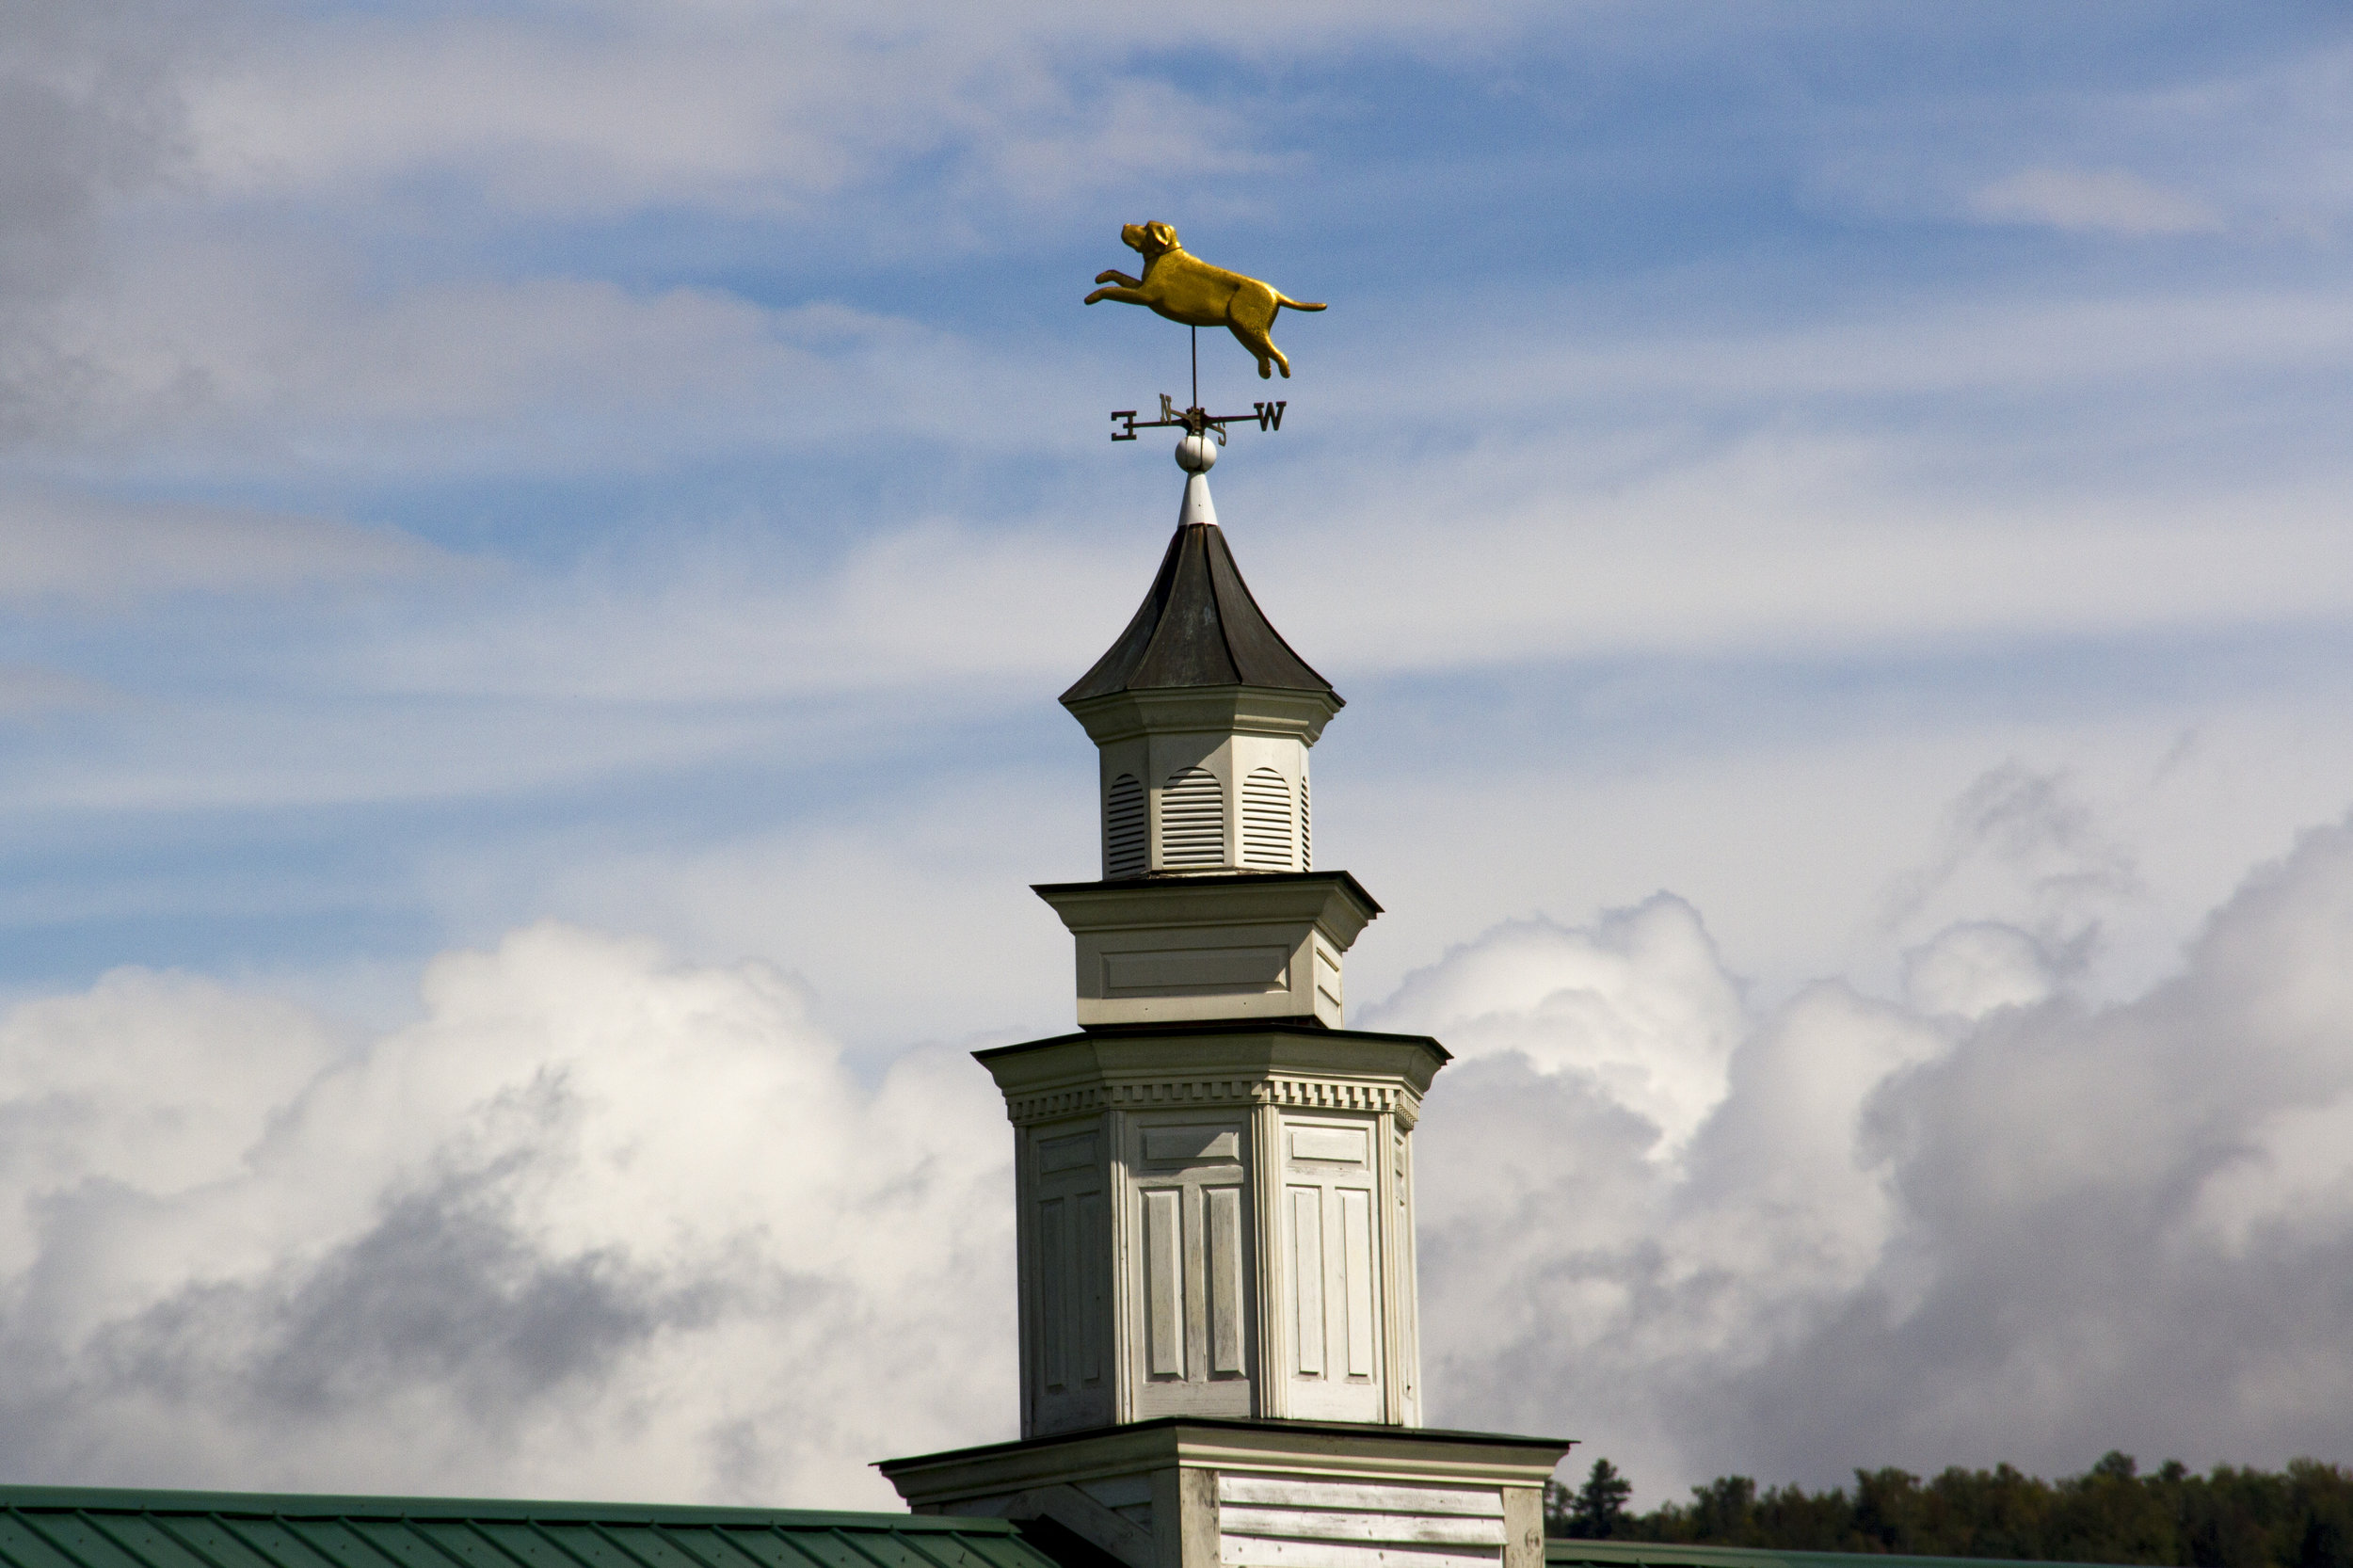 A weather vane on top of the cupola depicts a golden jumping dog, backdropped by blue sky and fluffy clouds.